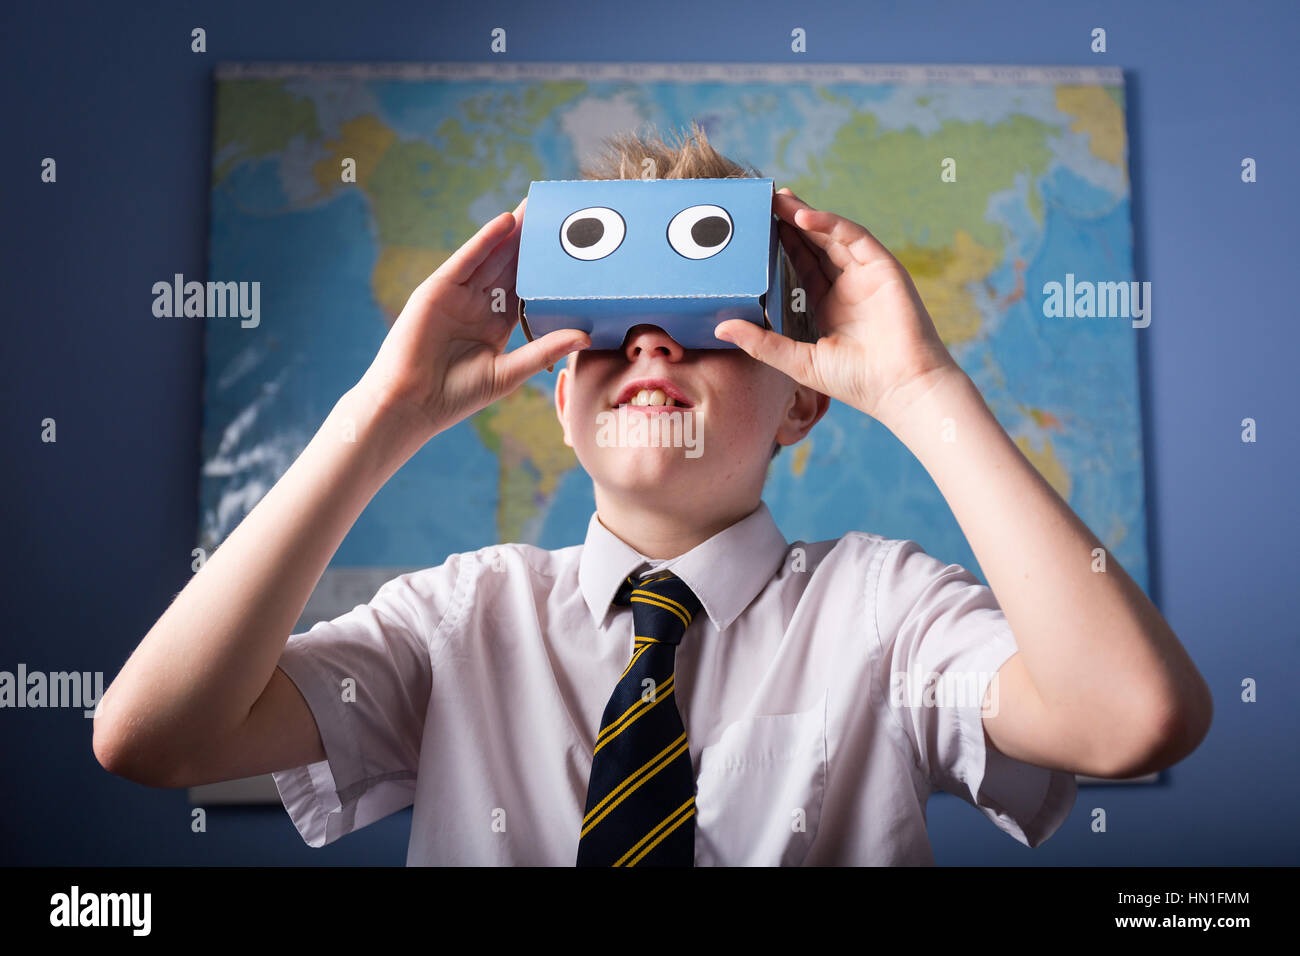 A School Pupil exploring the world through a VR Virtual Reality headset - Stock Image